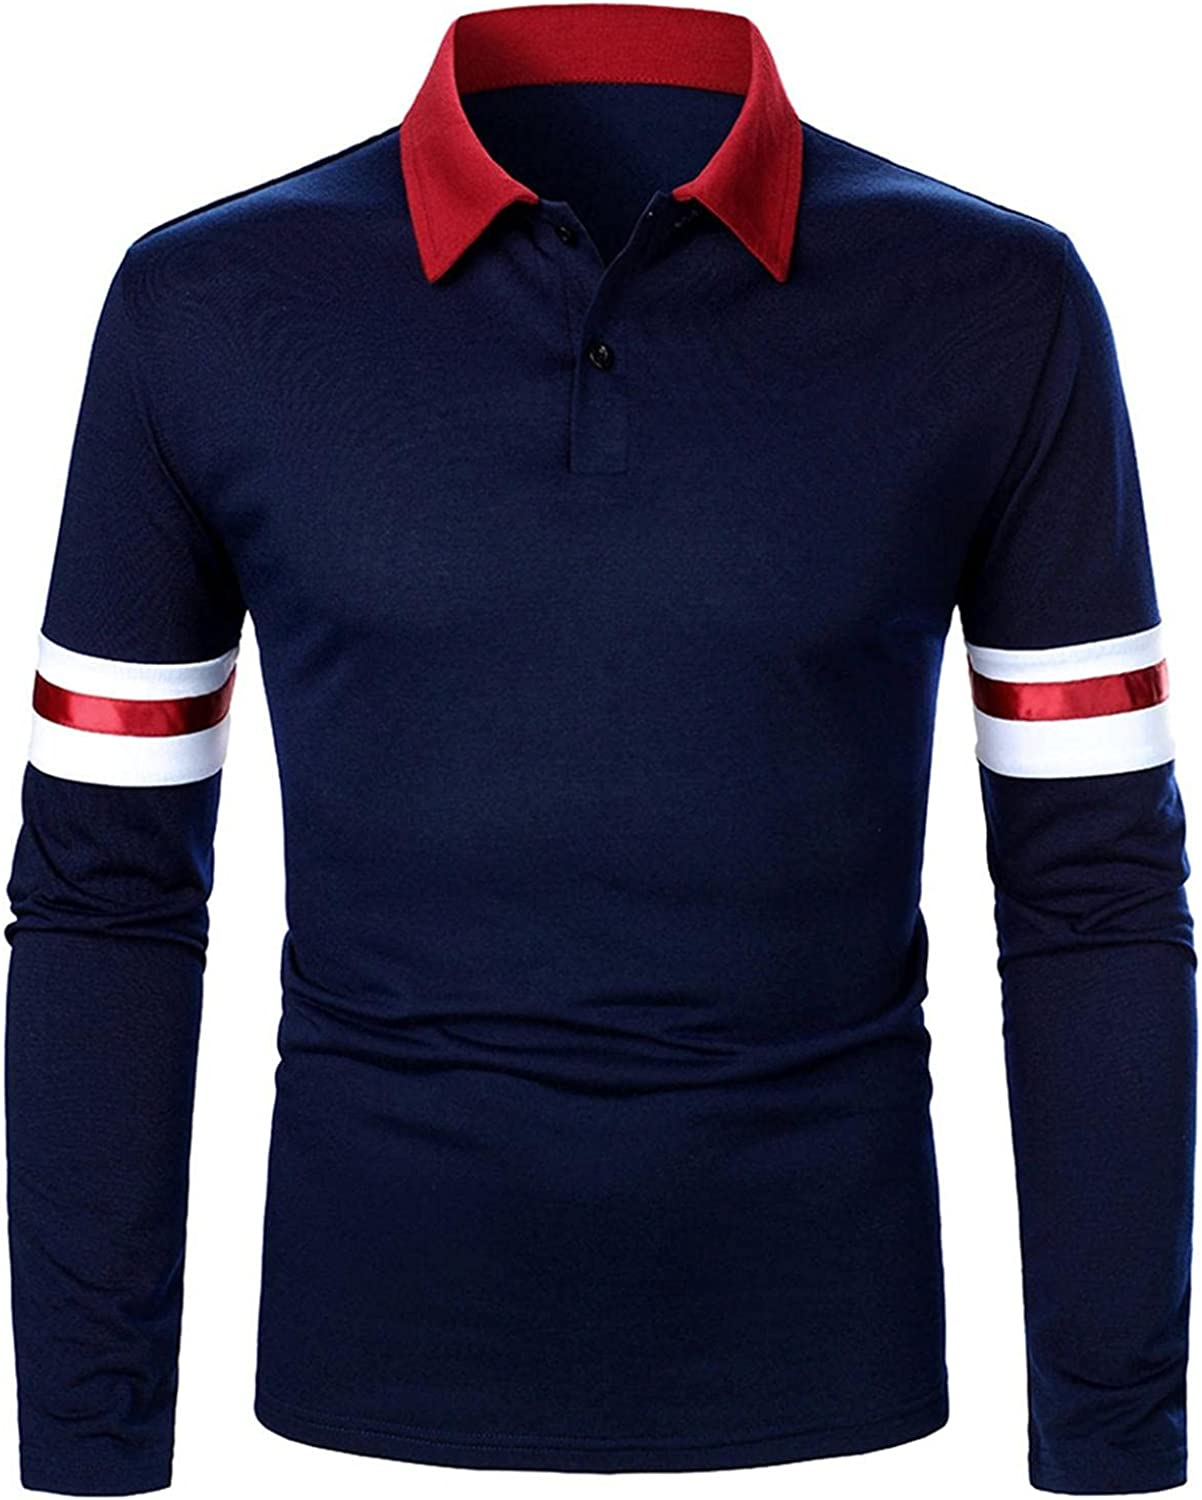 Qsctys Mens Polo Shirts Long Sleeve Casual Slim Stripe Cotton Shirts Lightweight Moisture Wicking Beefy Sweatshirts Pullover